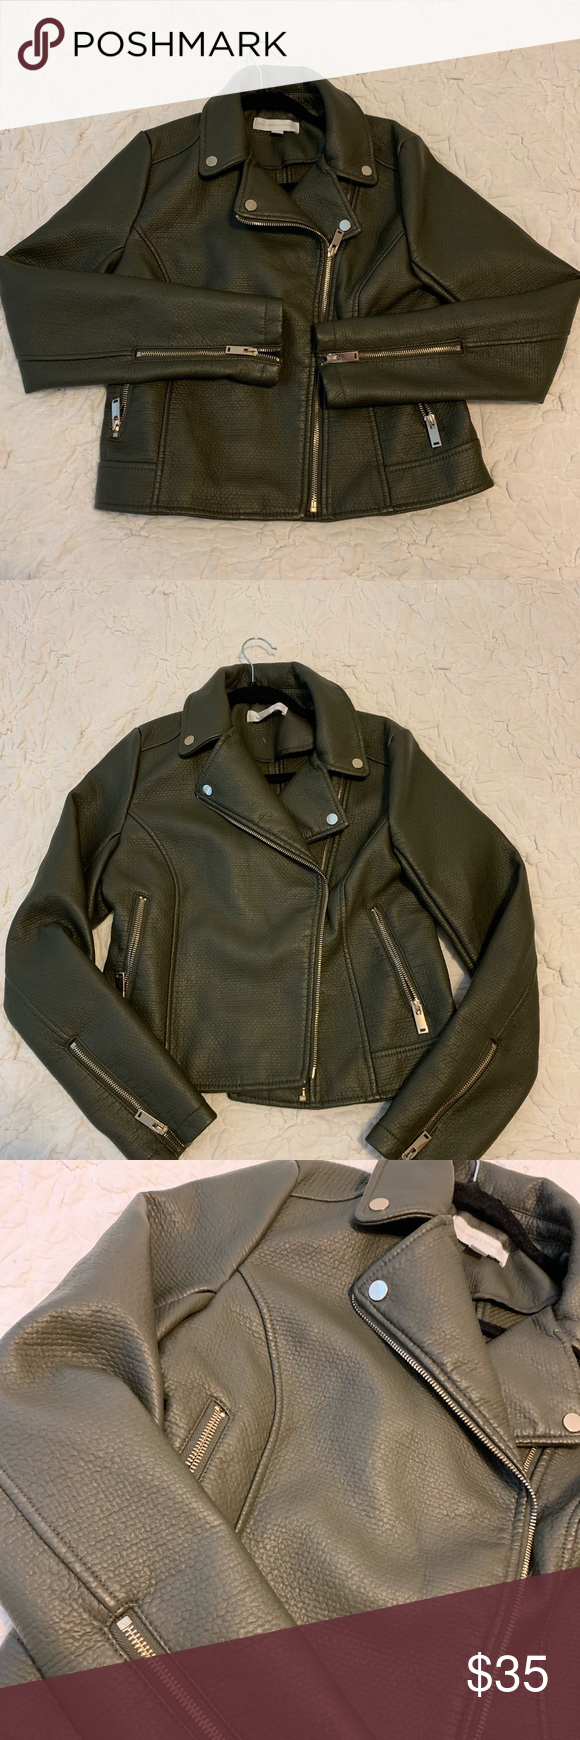 New New York Co Olive Green Leather Jacket S Never Worn New York And Company Olive Green Leat Green Leather Jackets Olive Green Leather Jacket Leather Jacket [ 1740 x 580 Pixel ]